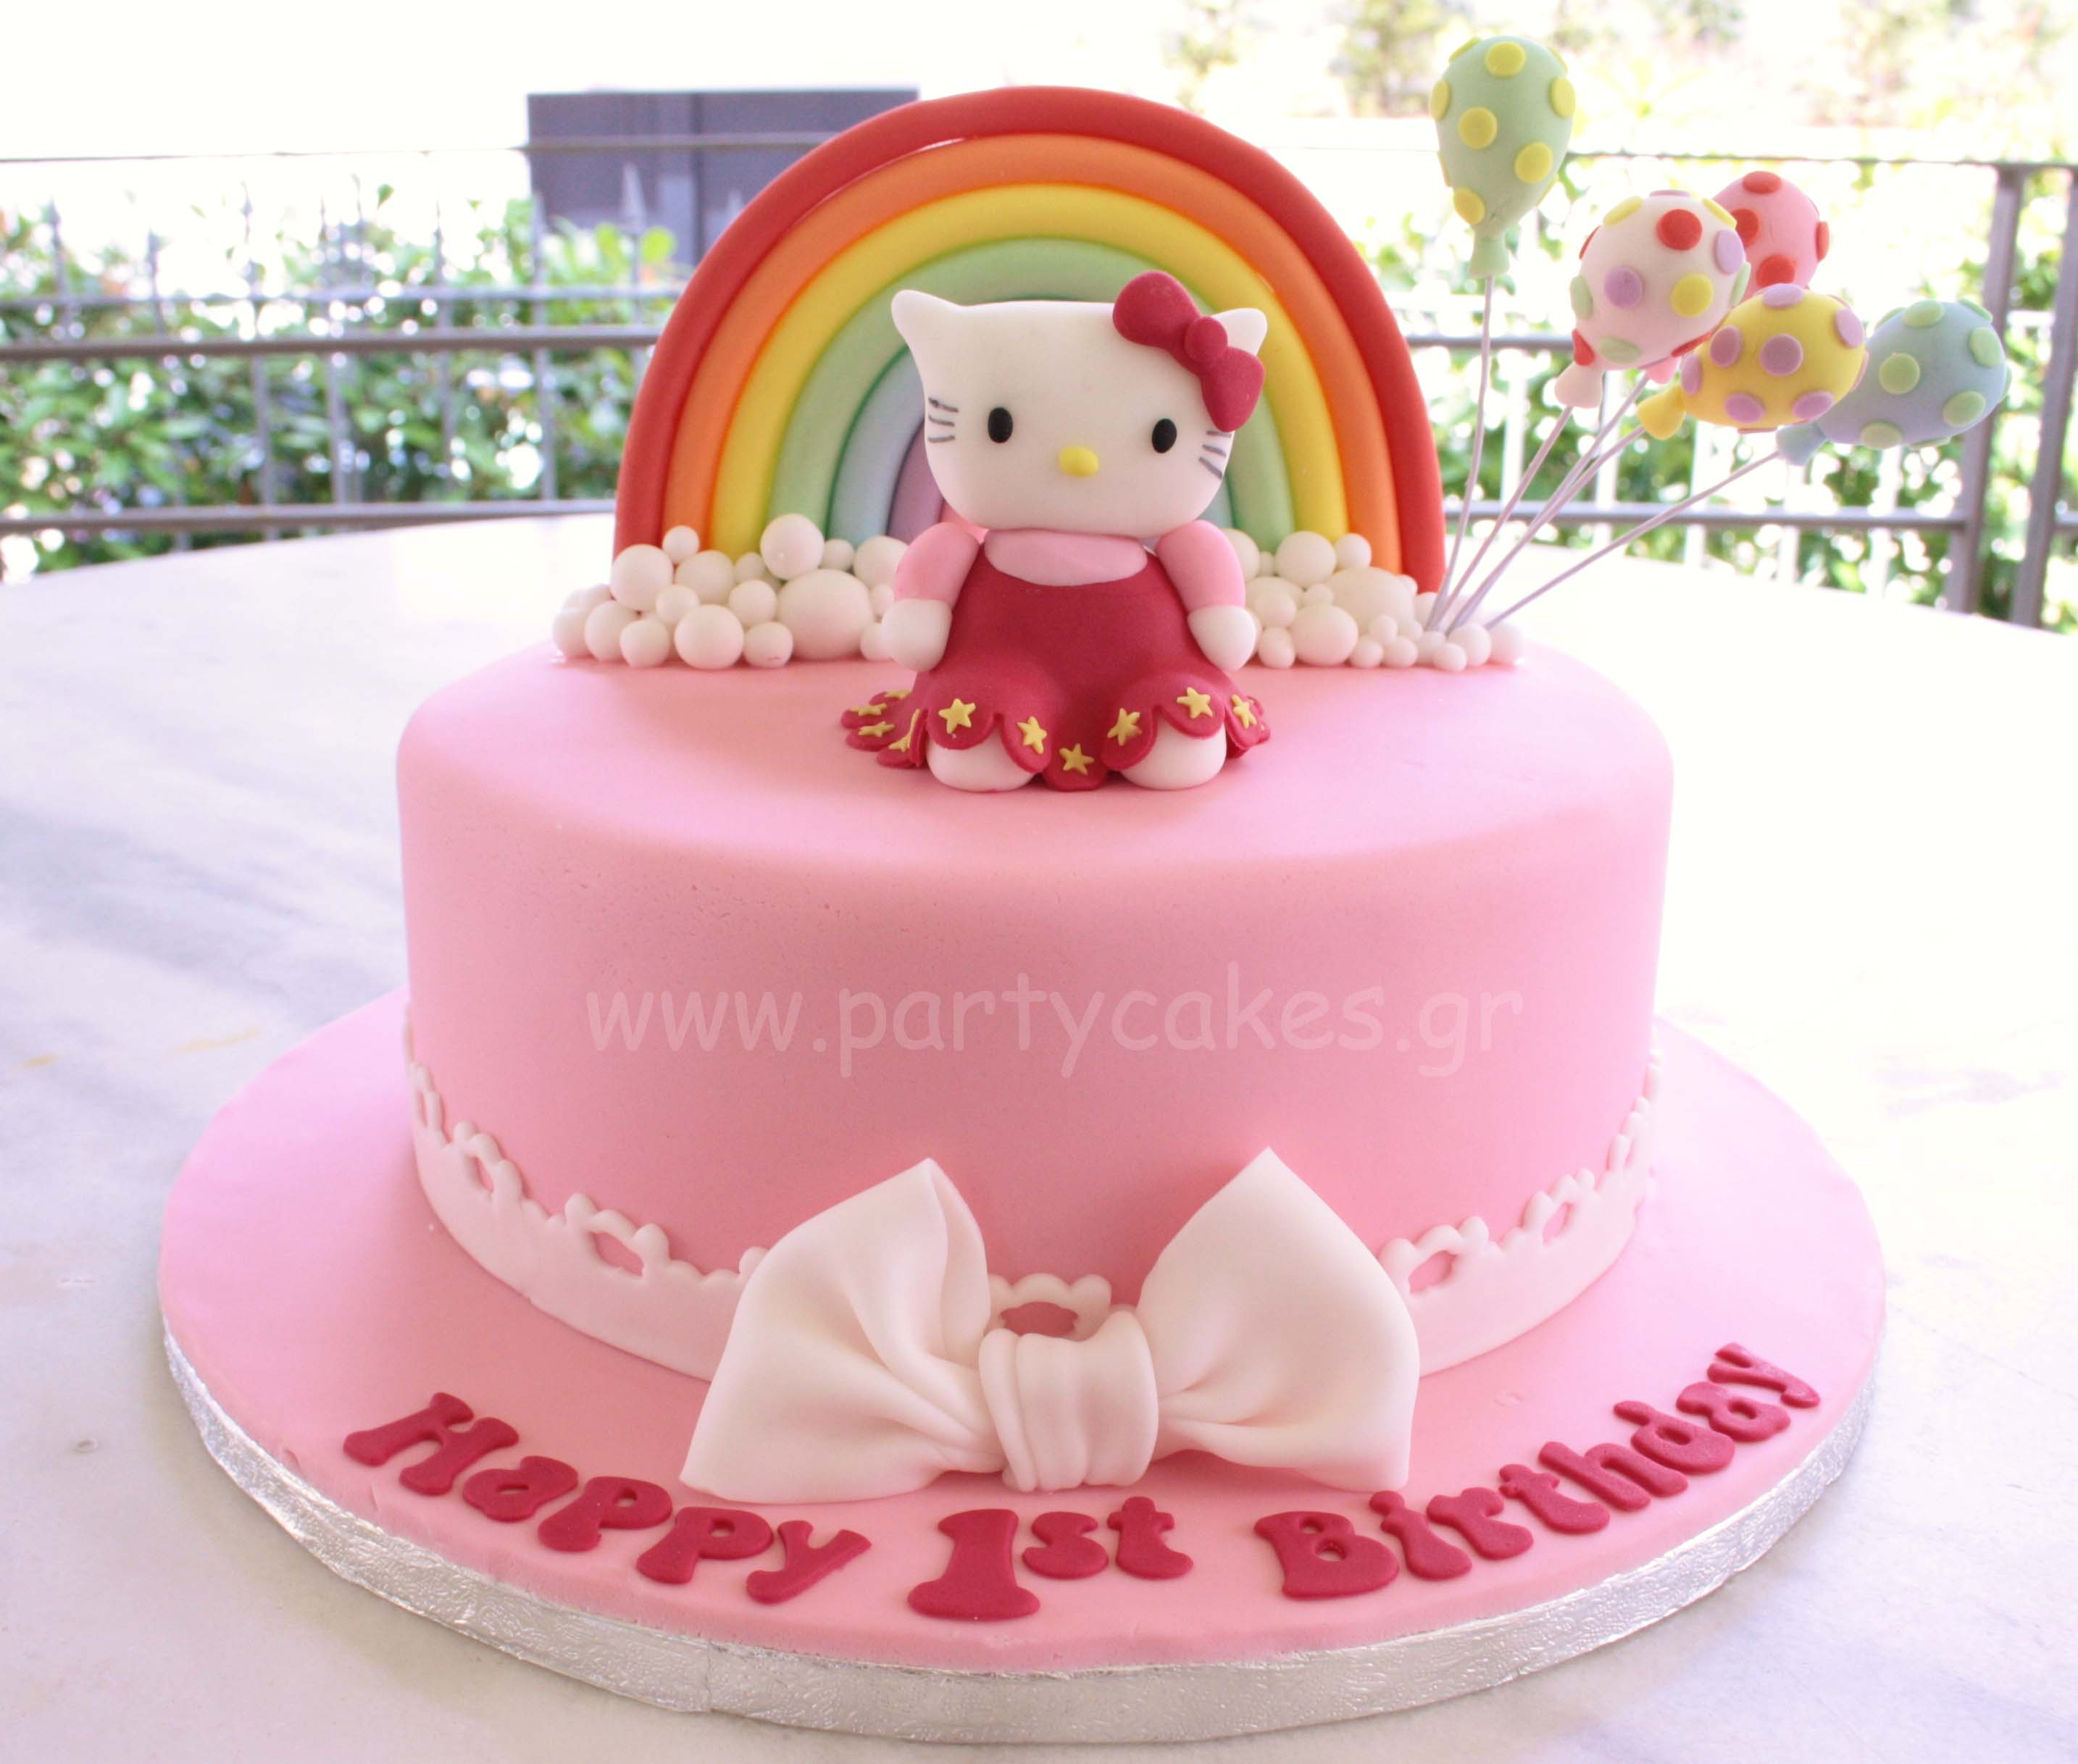 Hello+Kitty+Rainbow+1+copy.jpg